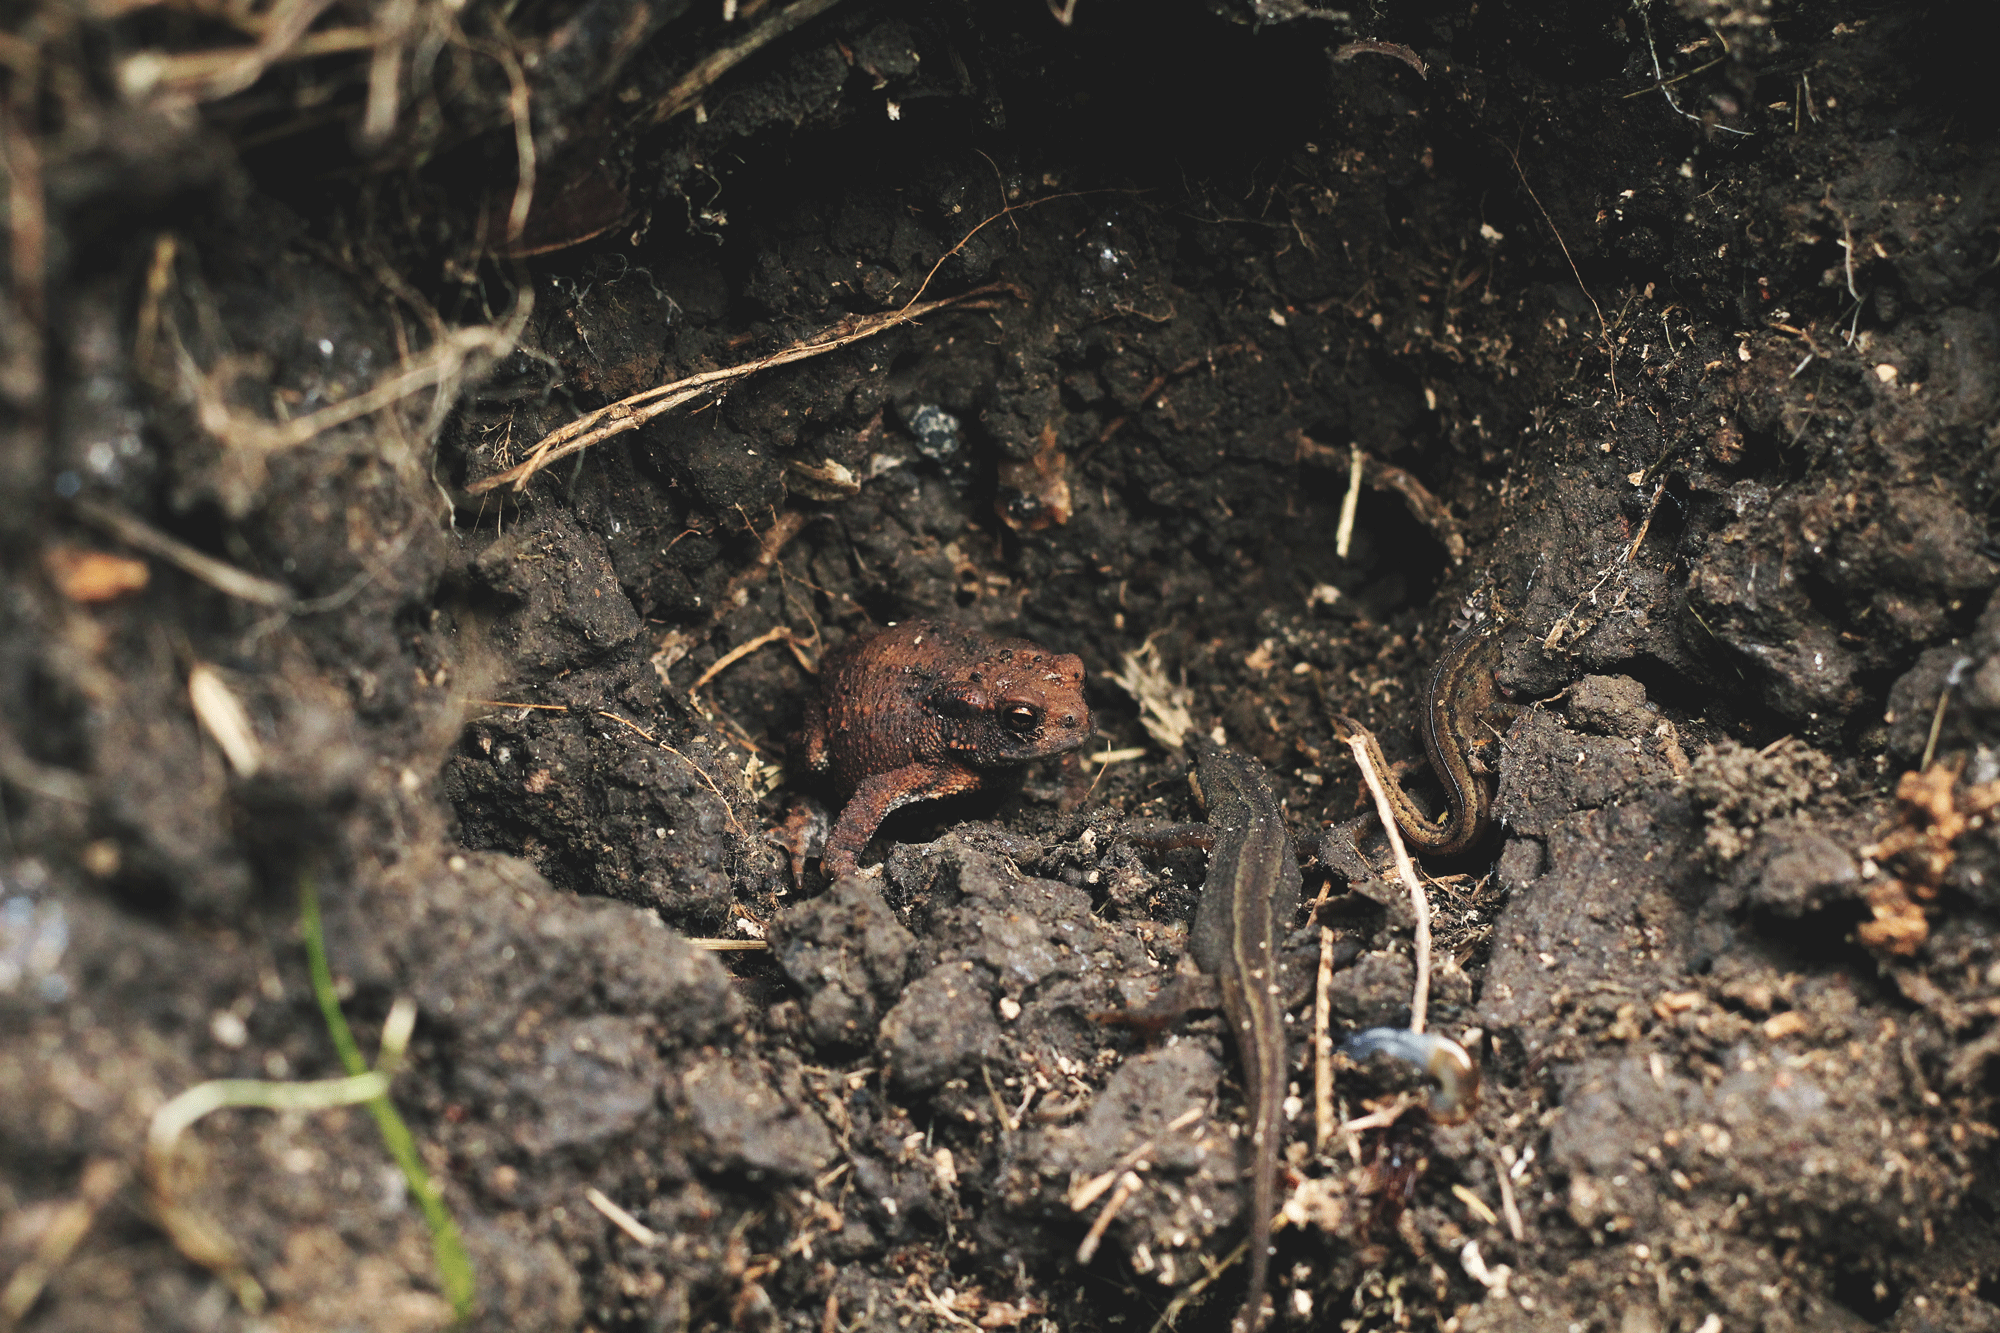 Undergrowth - Call for collaborators - Image of a frog in a damp forest